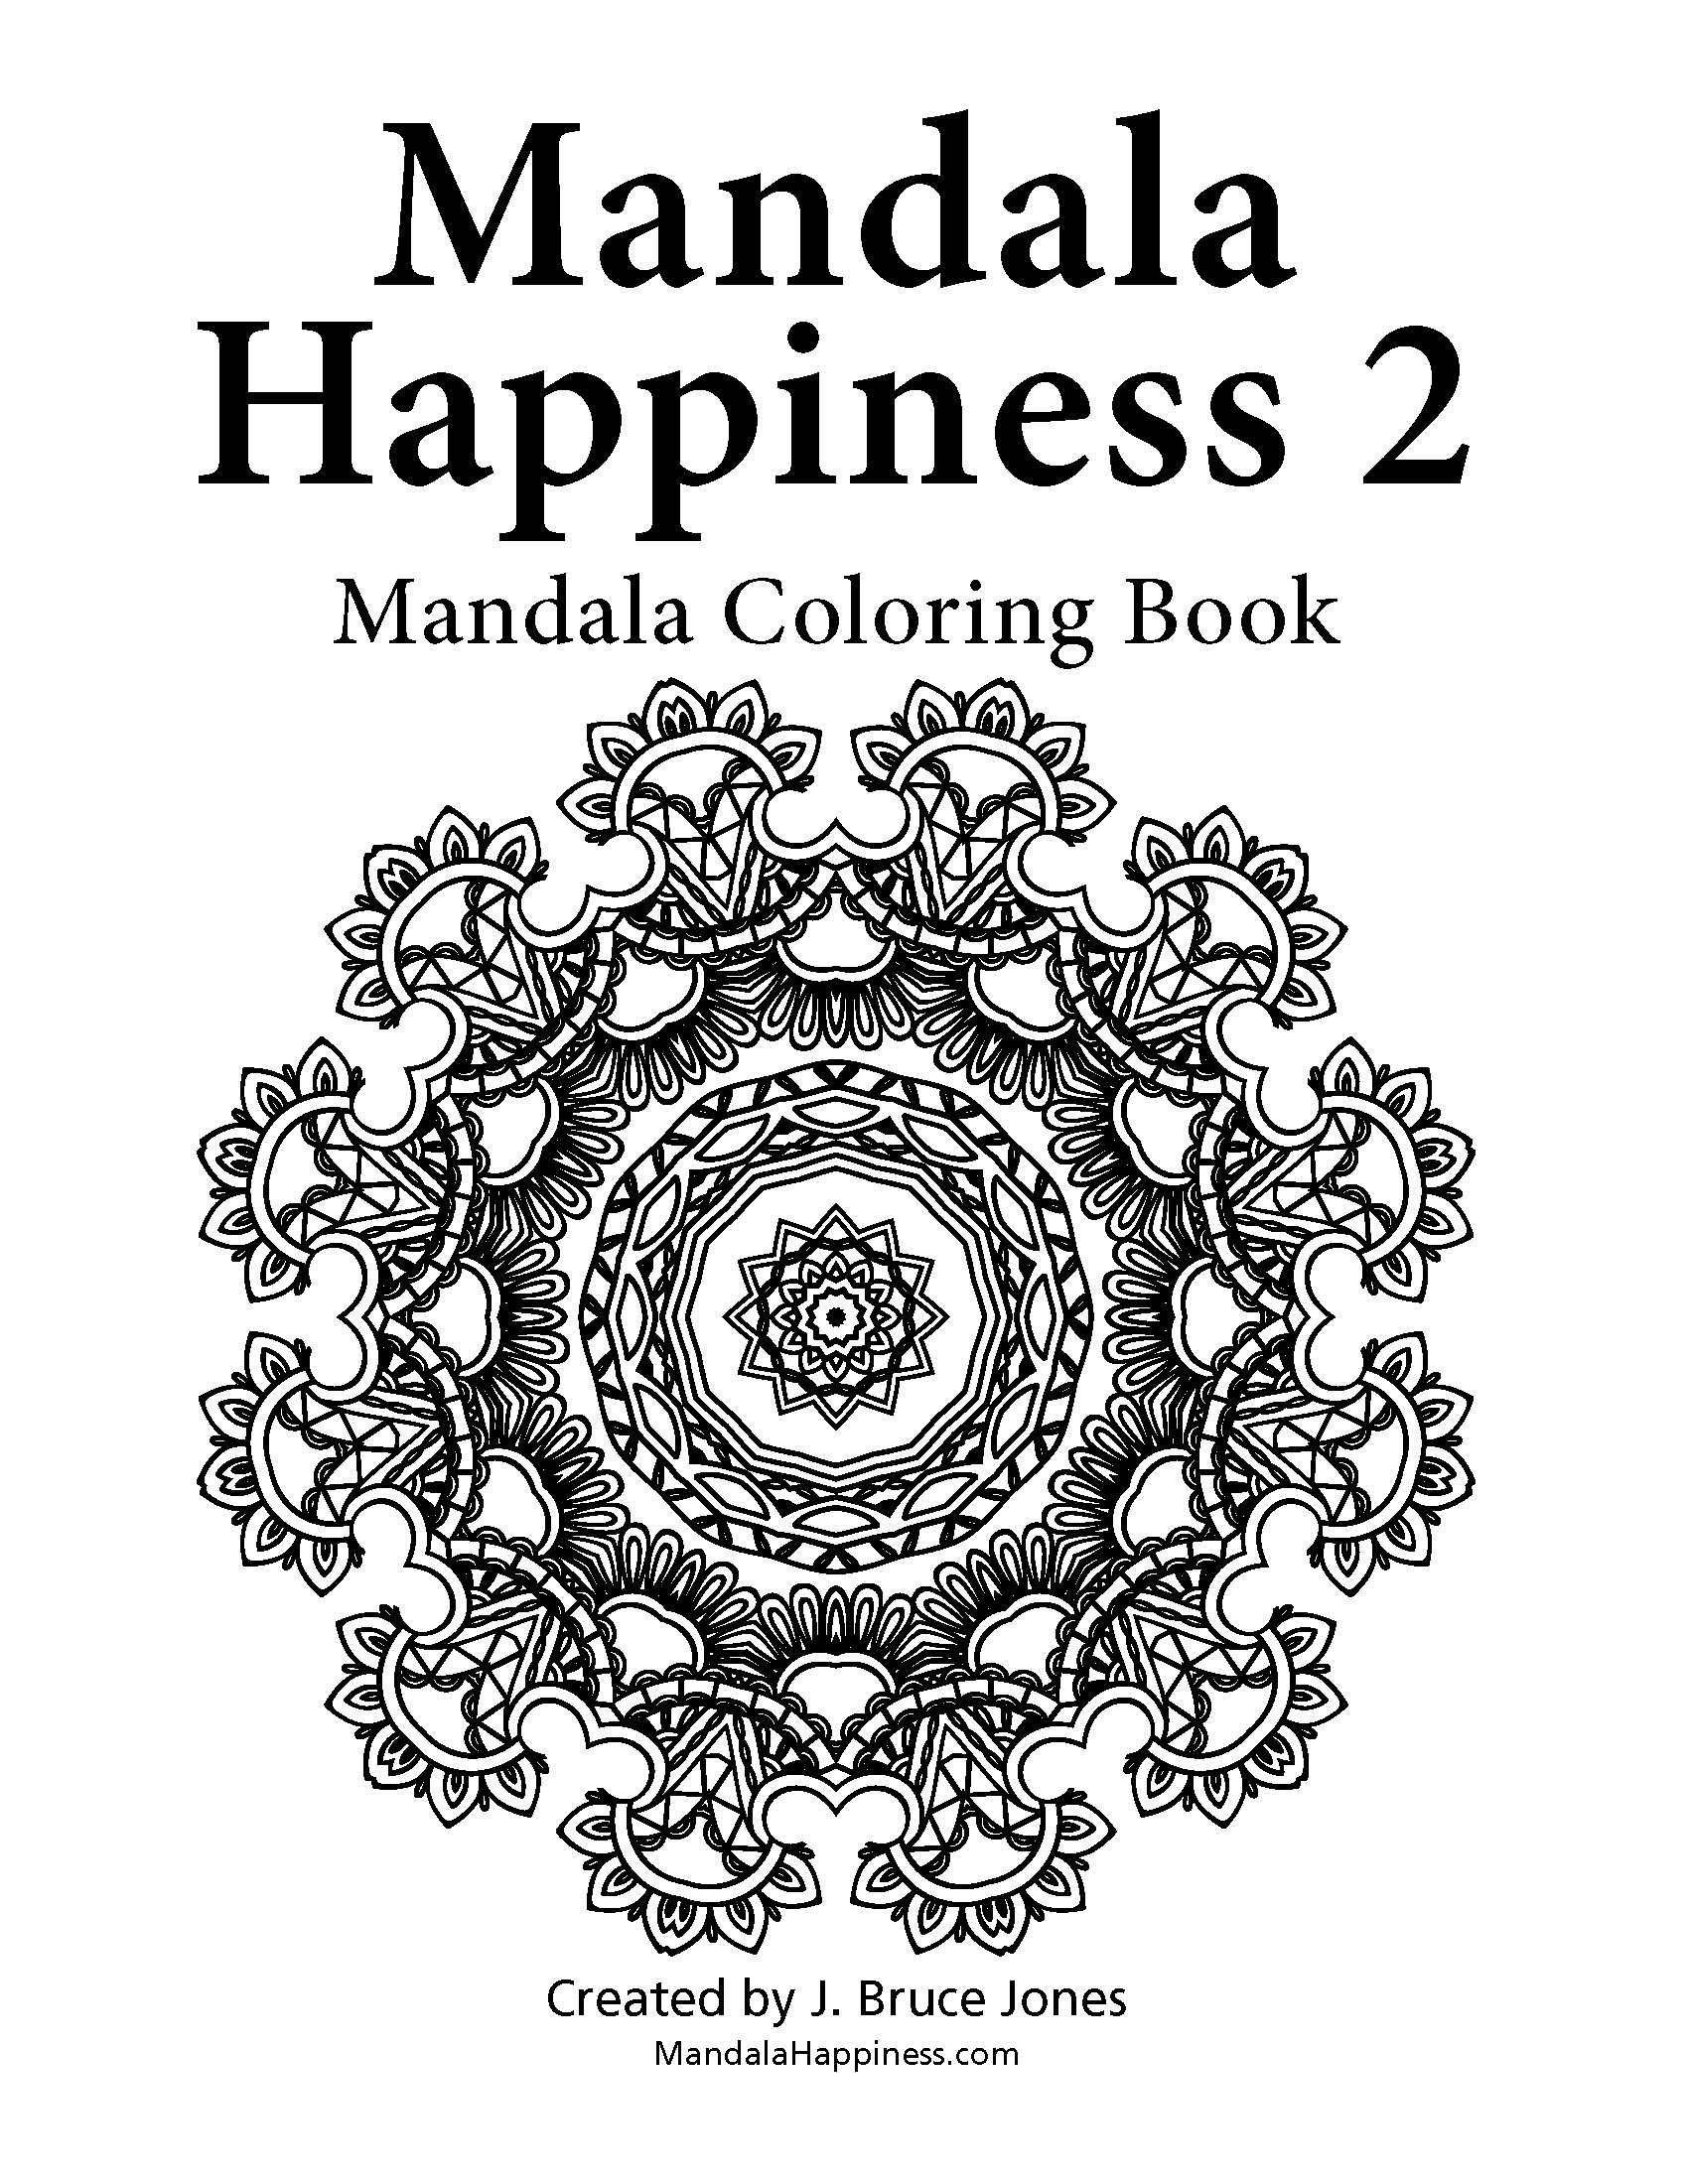 Title Page From Mandala Happiness 2 An Adult Coloring Book Great For Reducing Stress